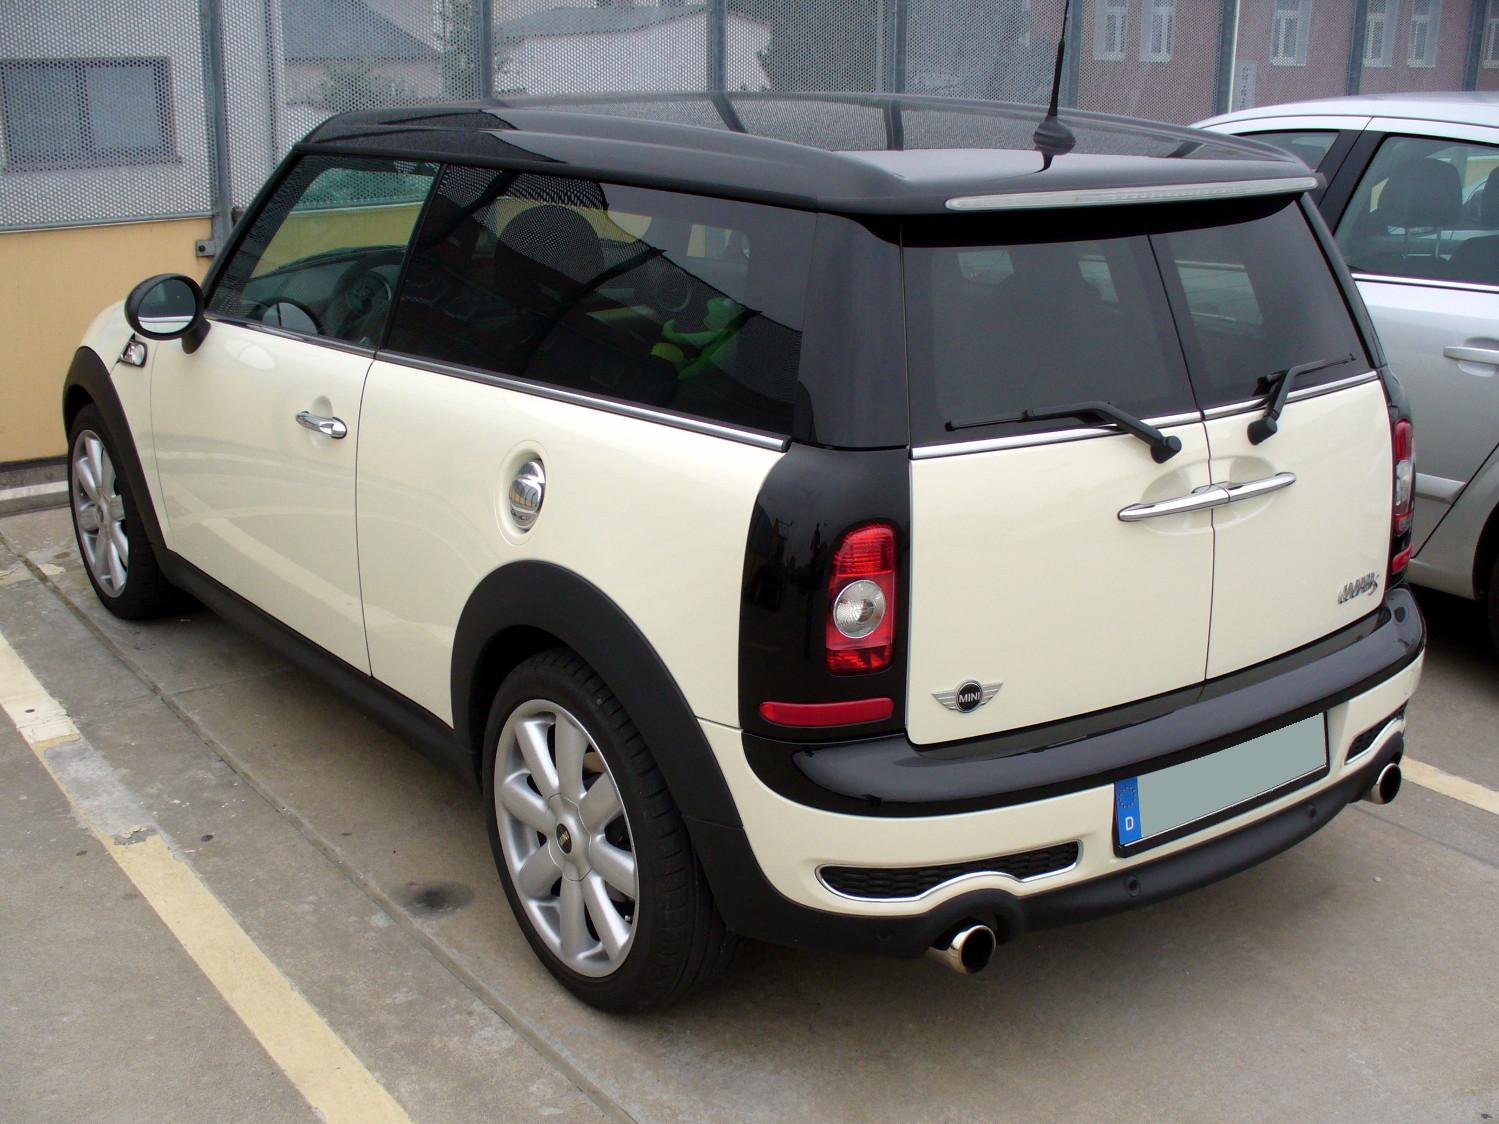 File:Mini Cooper S Clubman Pepperwhite Heck.JPG - Wikimedia Commons